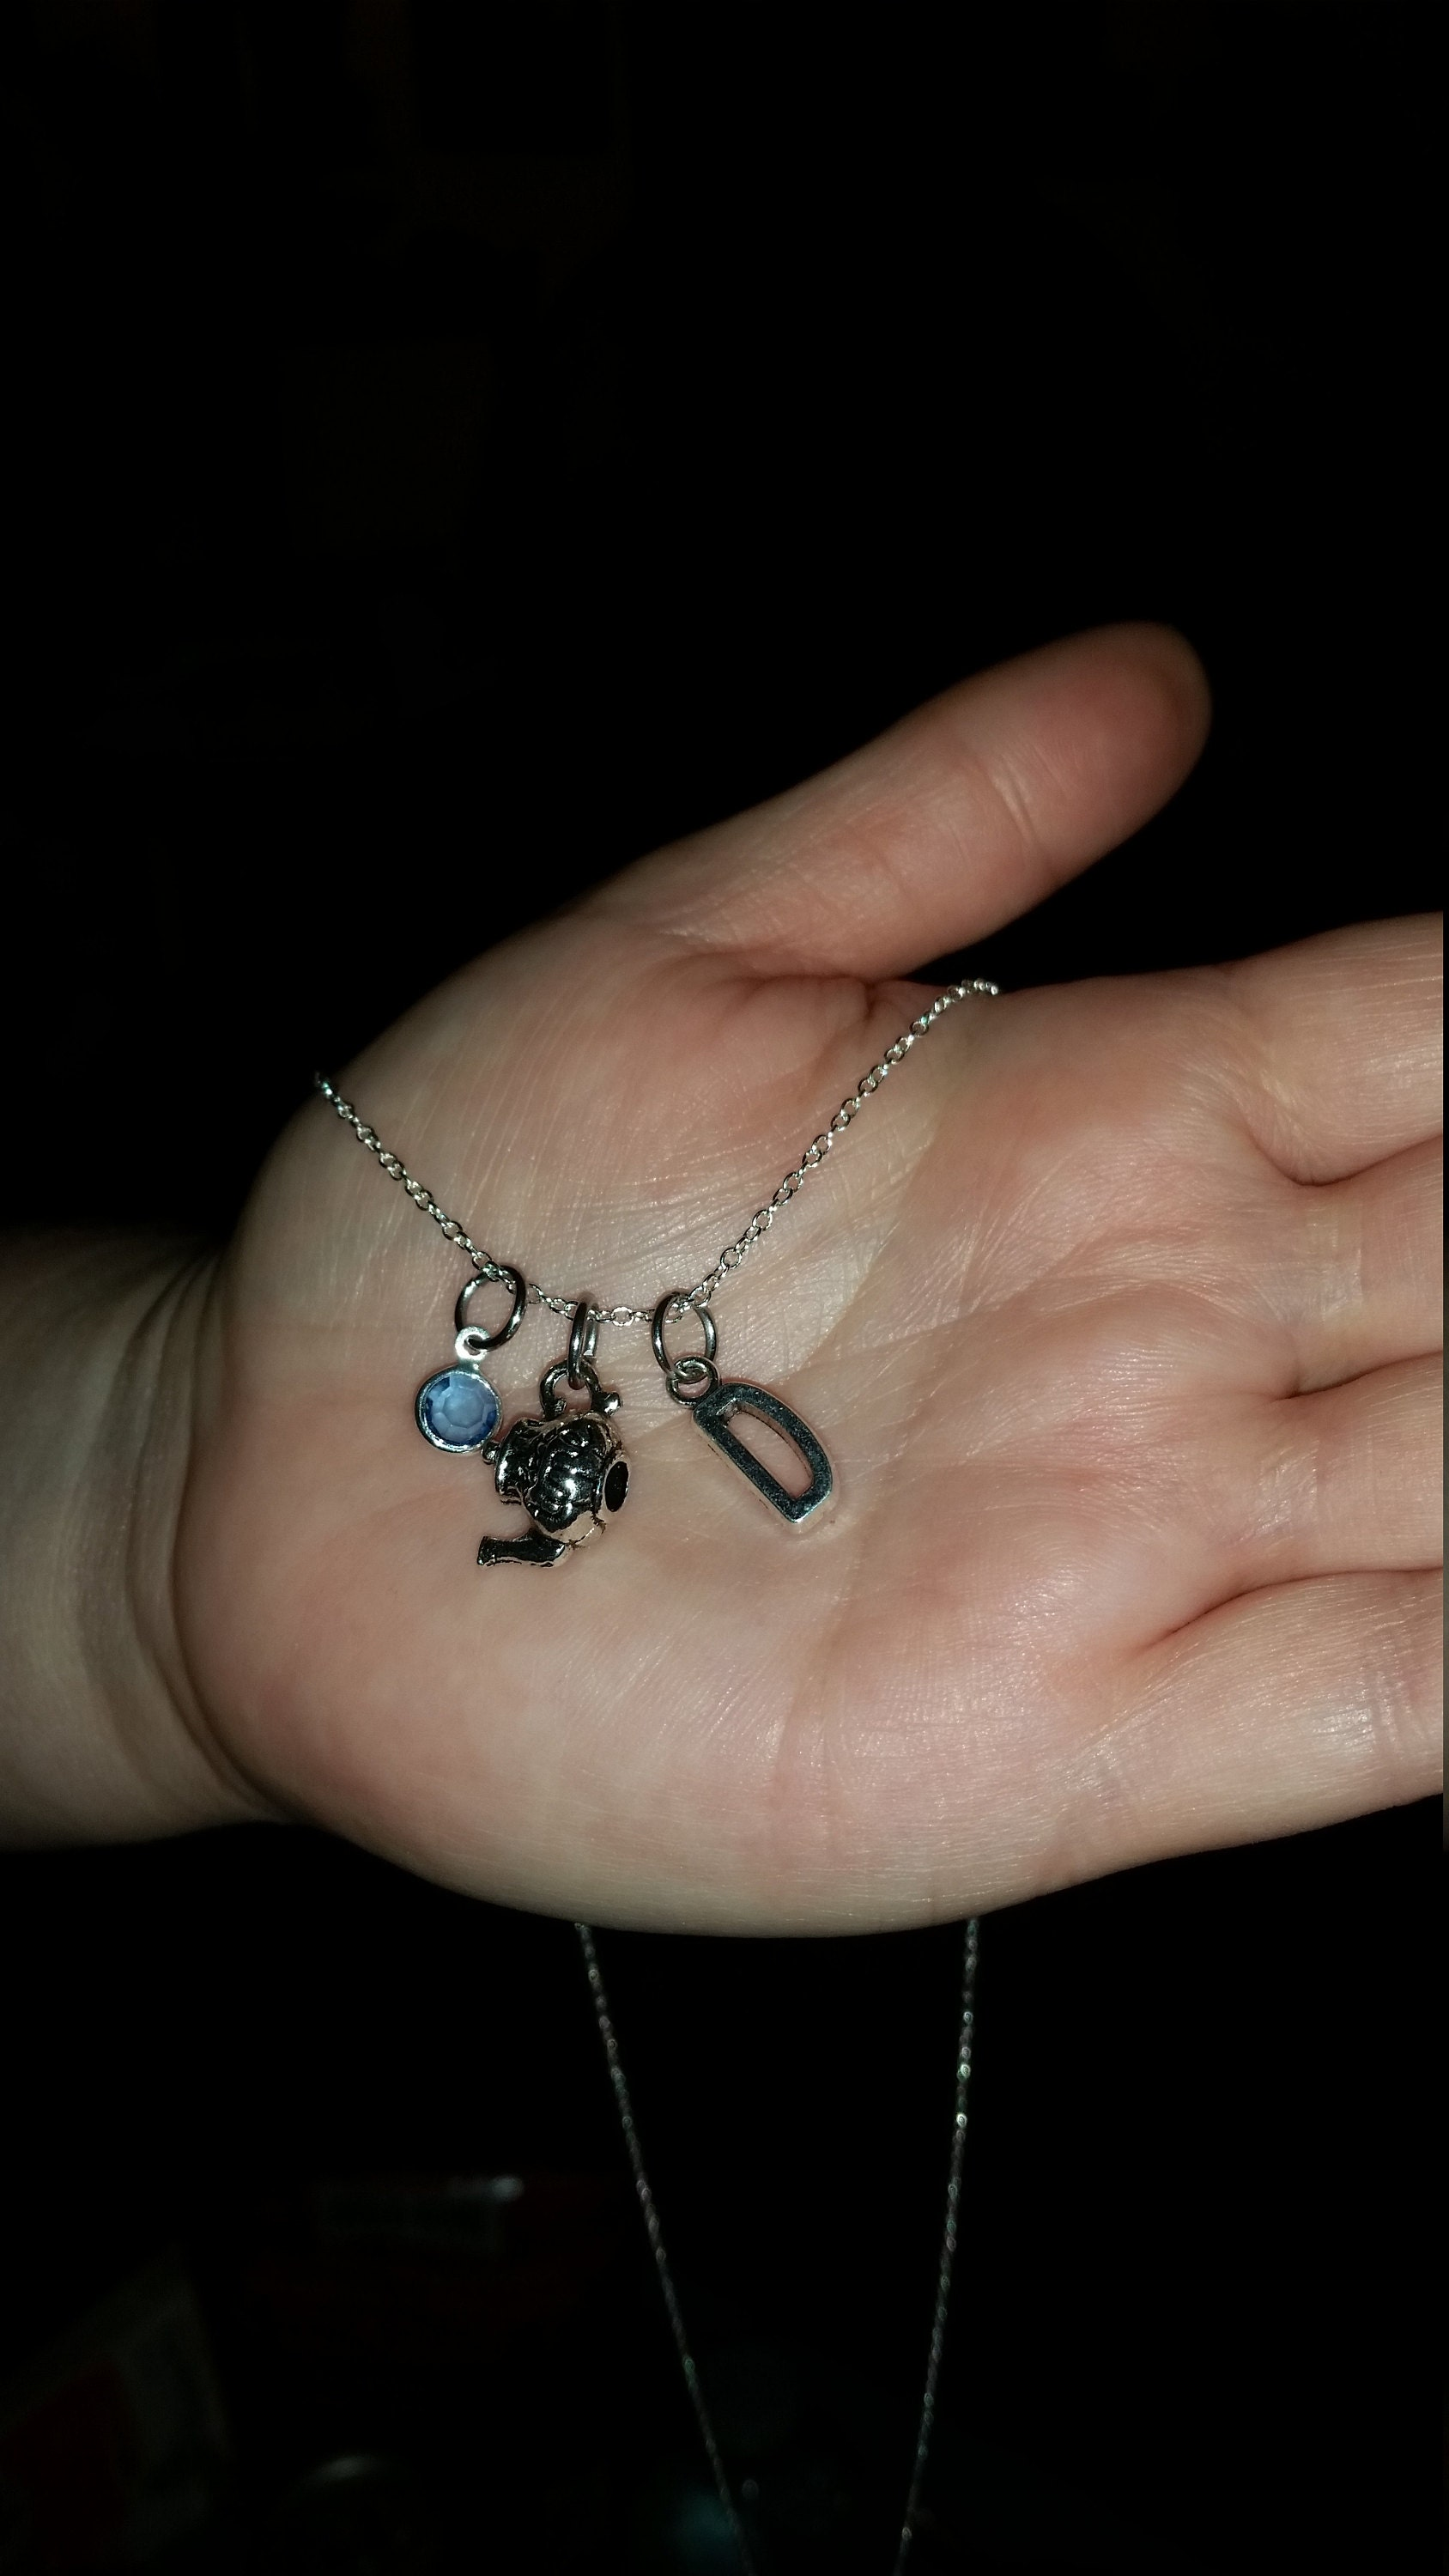 Janet Simpson added a photo of their purchase